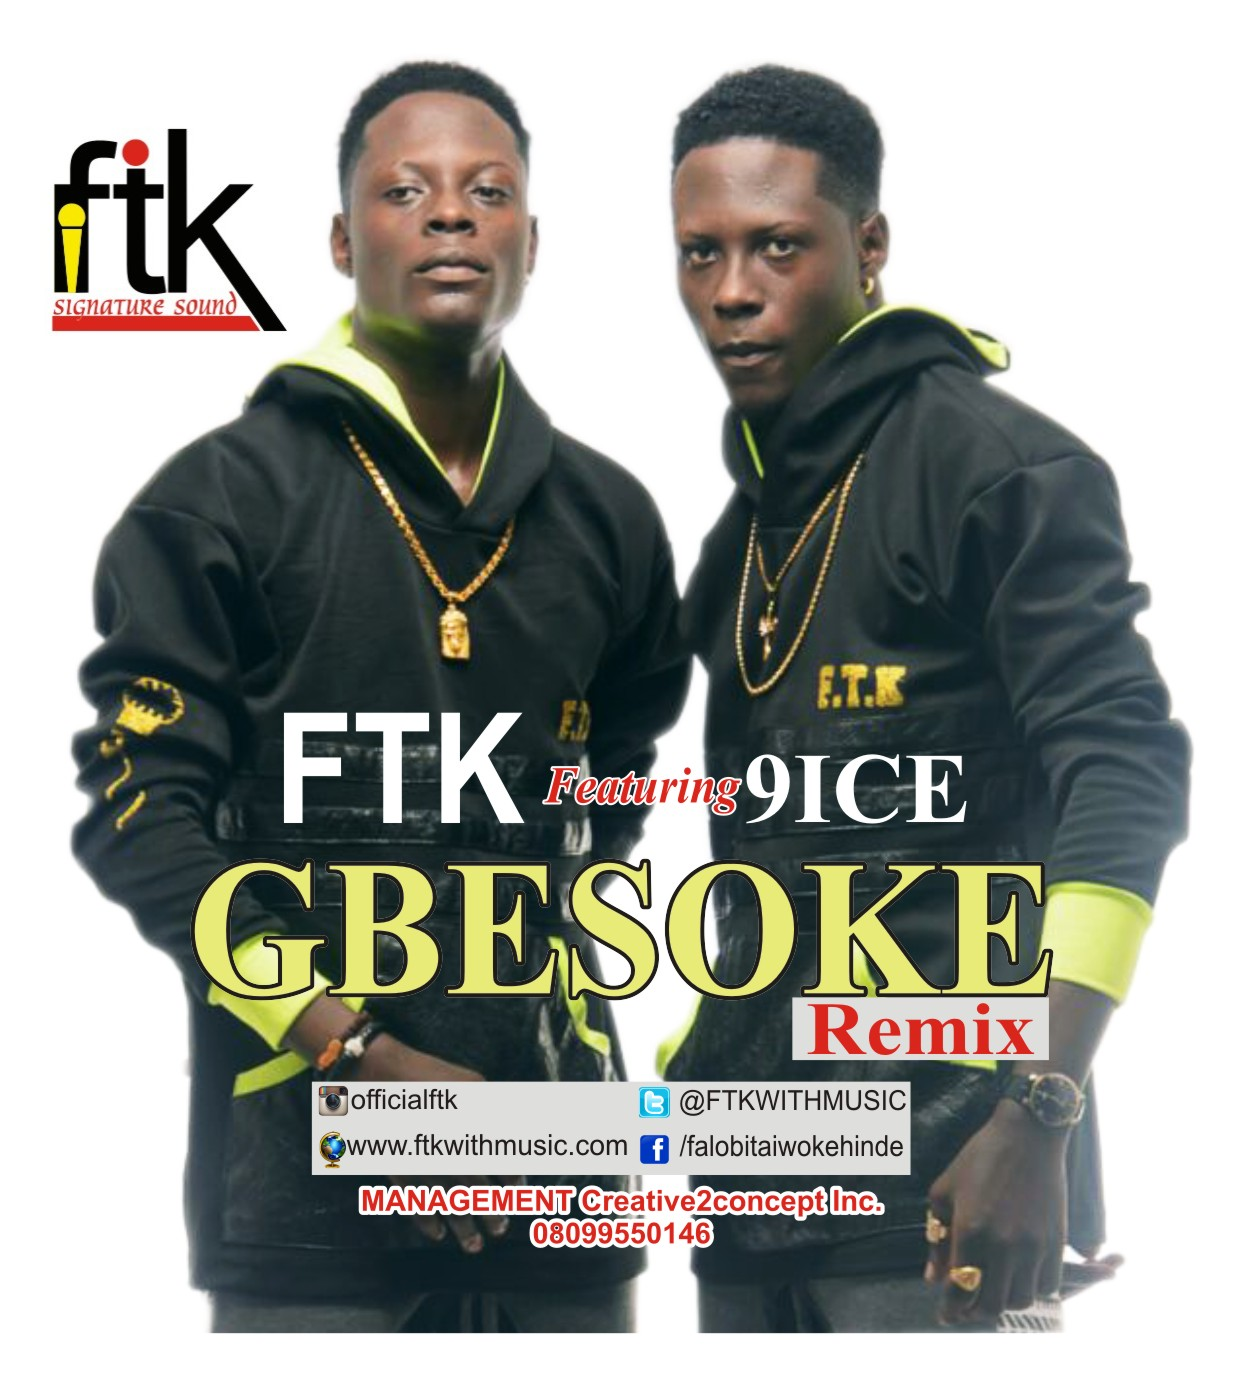 VIDEO: FTK ft. 9ice – Gbesoke